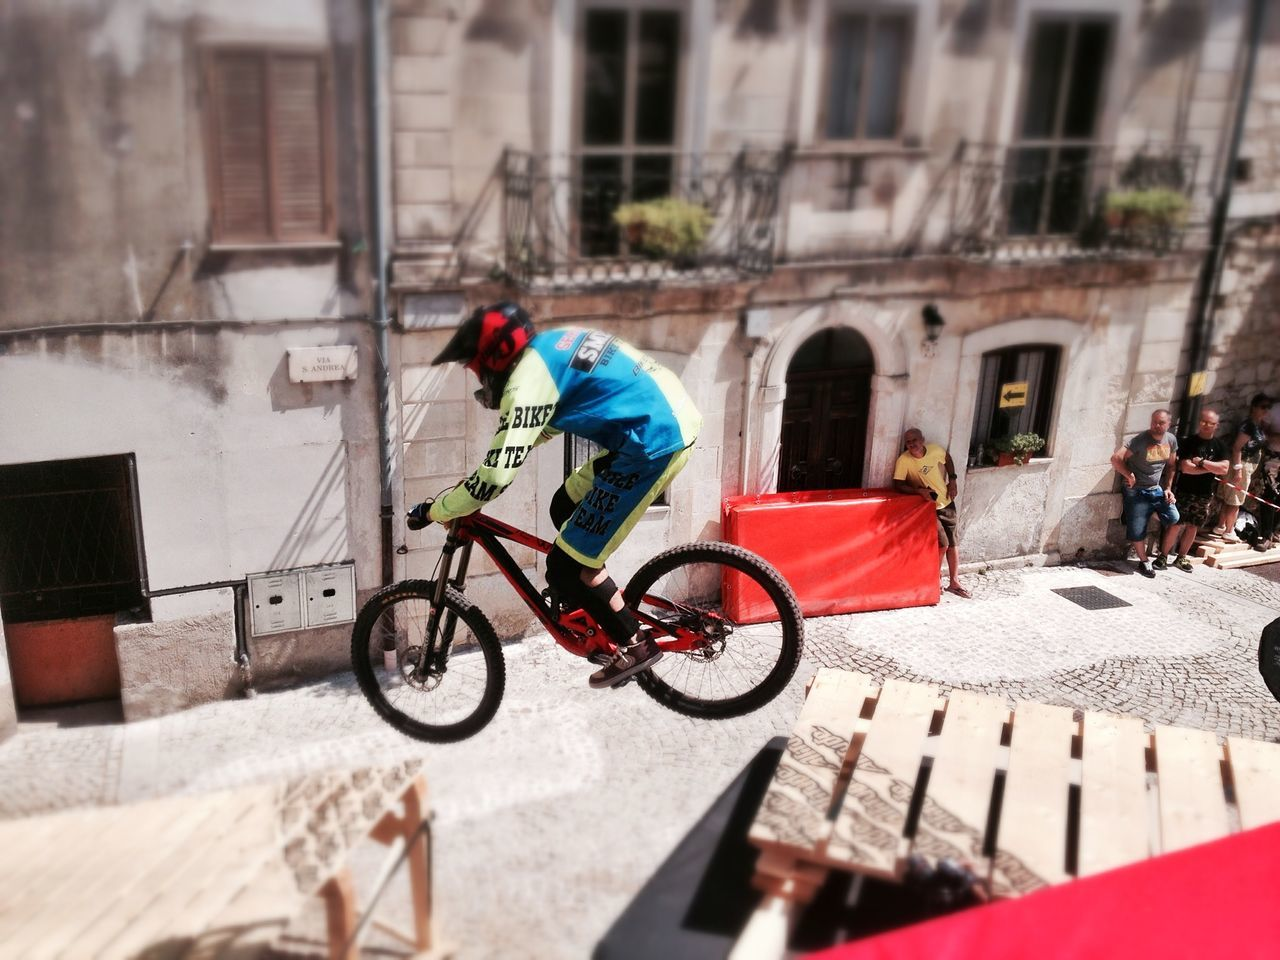 Downtown Pretoro 23 Agosto 2015 MTB Mountainbike Downhill Downtown Ride Abruzzo Italy Pretoro Bycicle